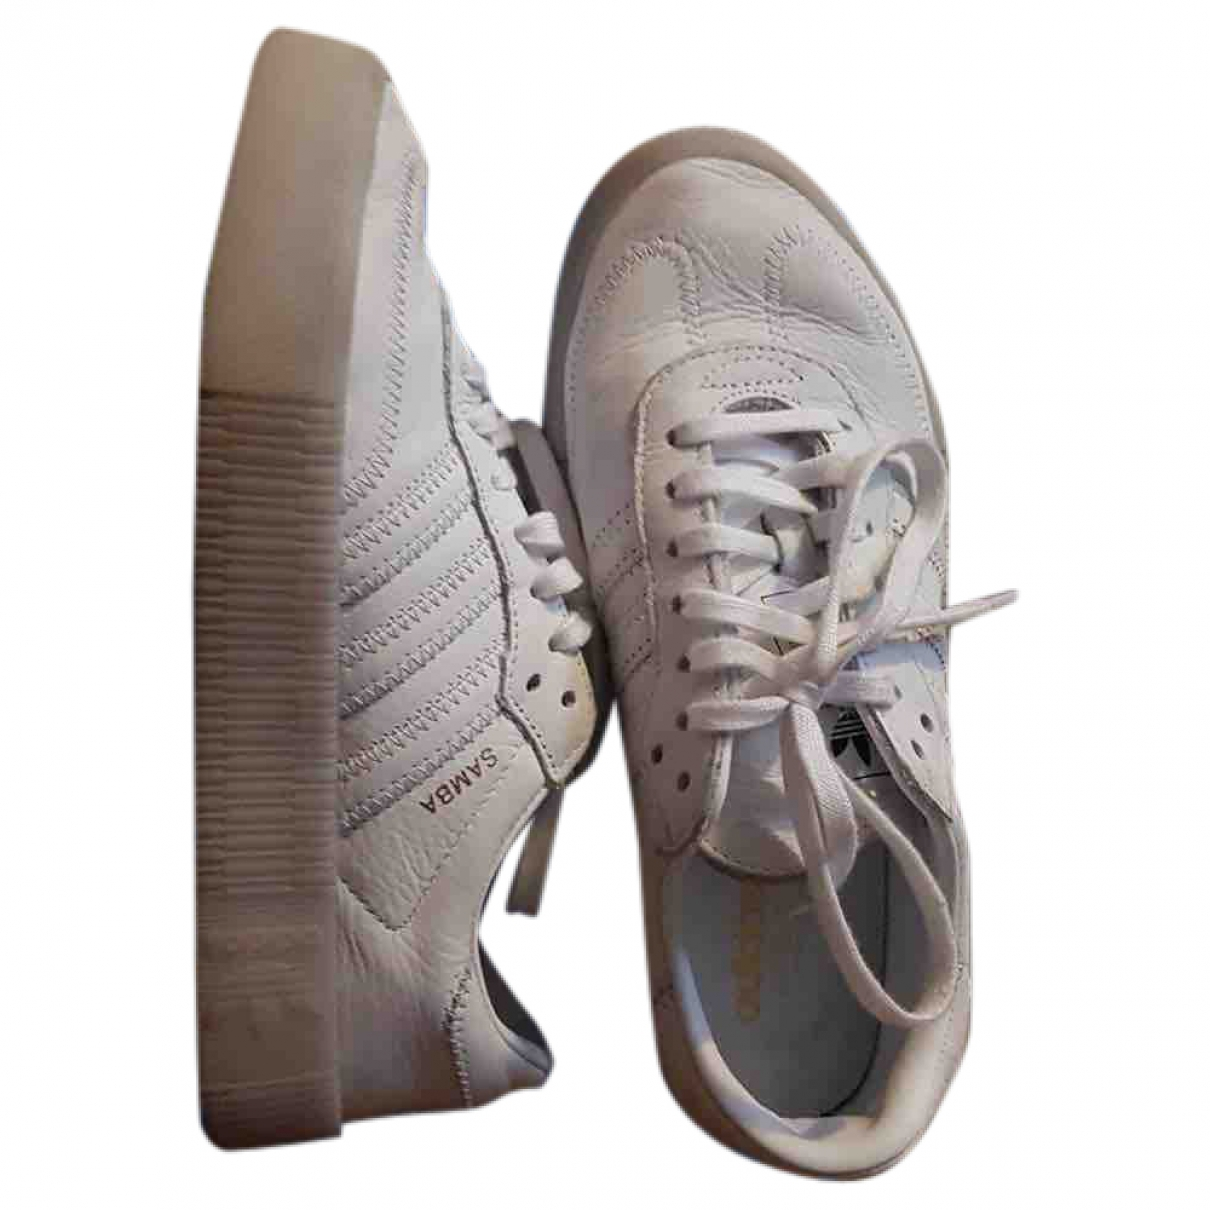 Adidas Samba Sneakers in  Weiss Leder